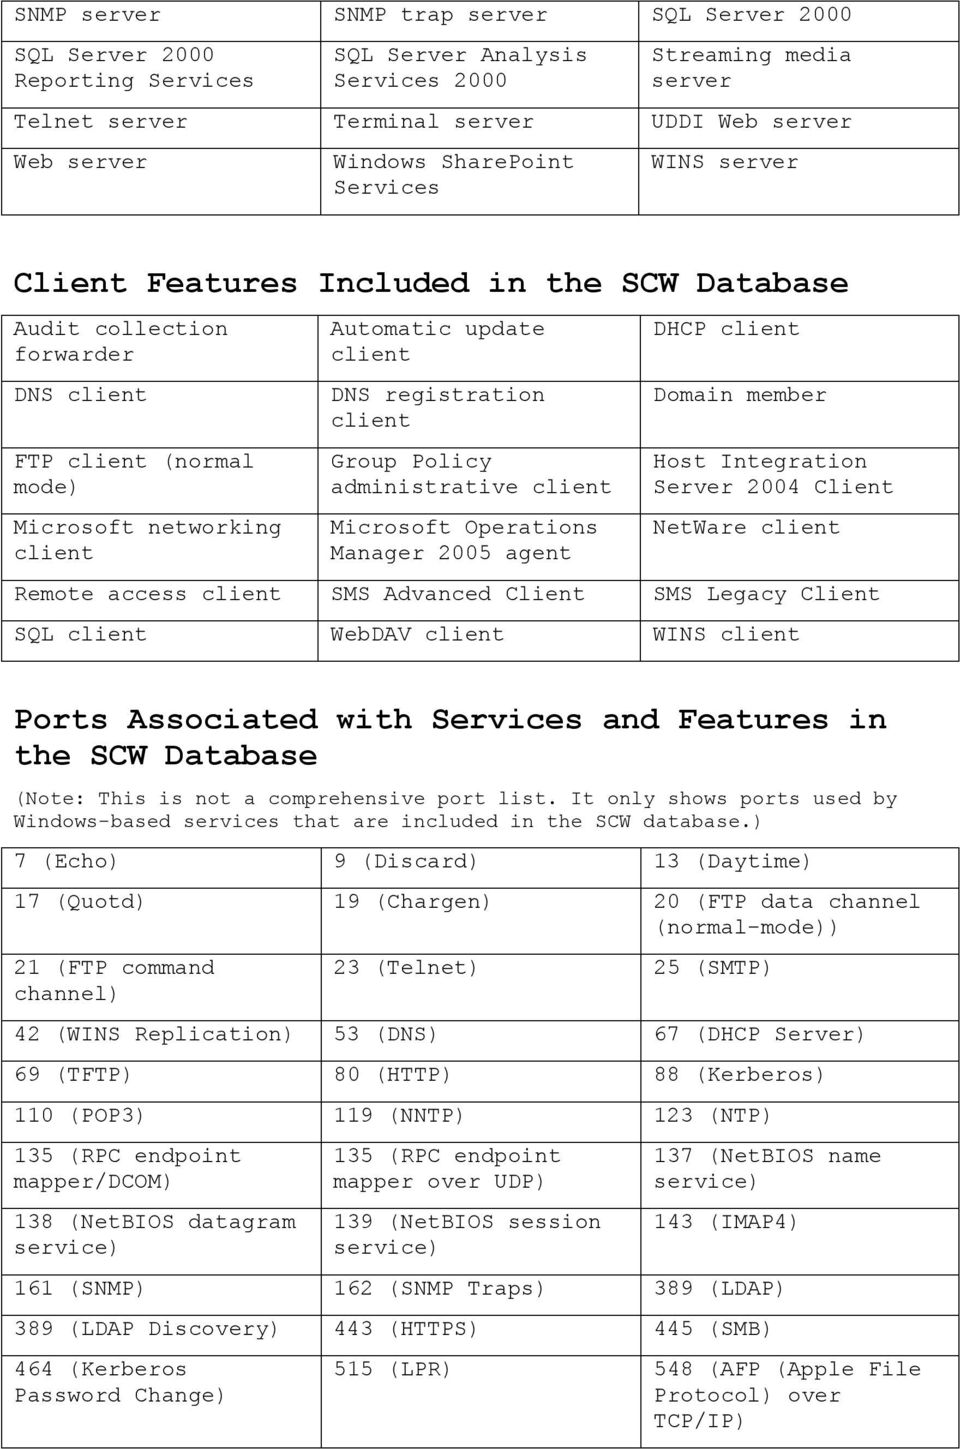 agent DHCP Domain member Server 2004 Client NetWare Remote access SMS Advanced Client SMS Legacy Client SQL WebDAV WINS Ports Associated with Services and Features in the SCW Database (Note: This is